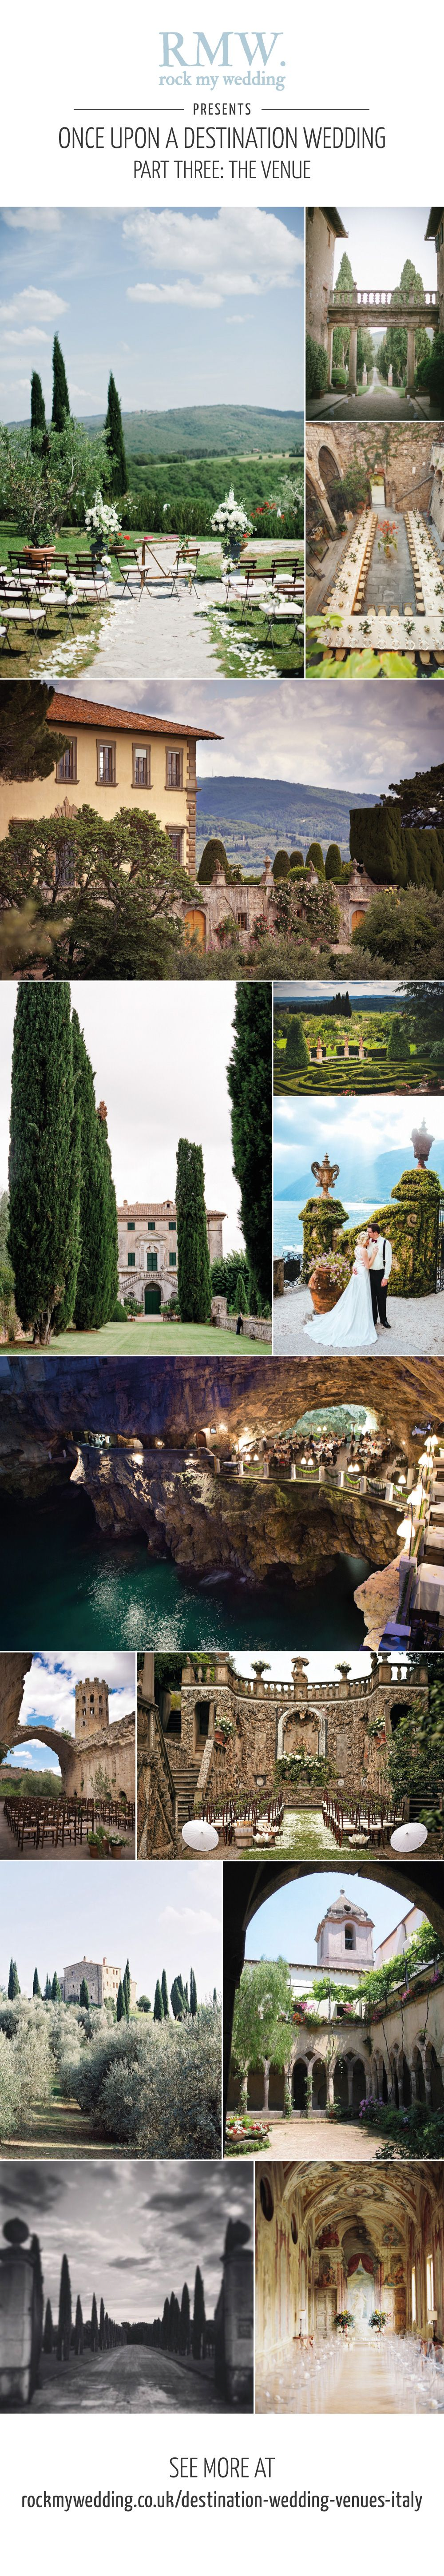 How To Find A Wedding Venue In Italy Planning Advice For Destination